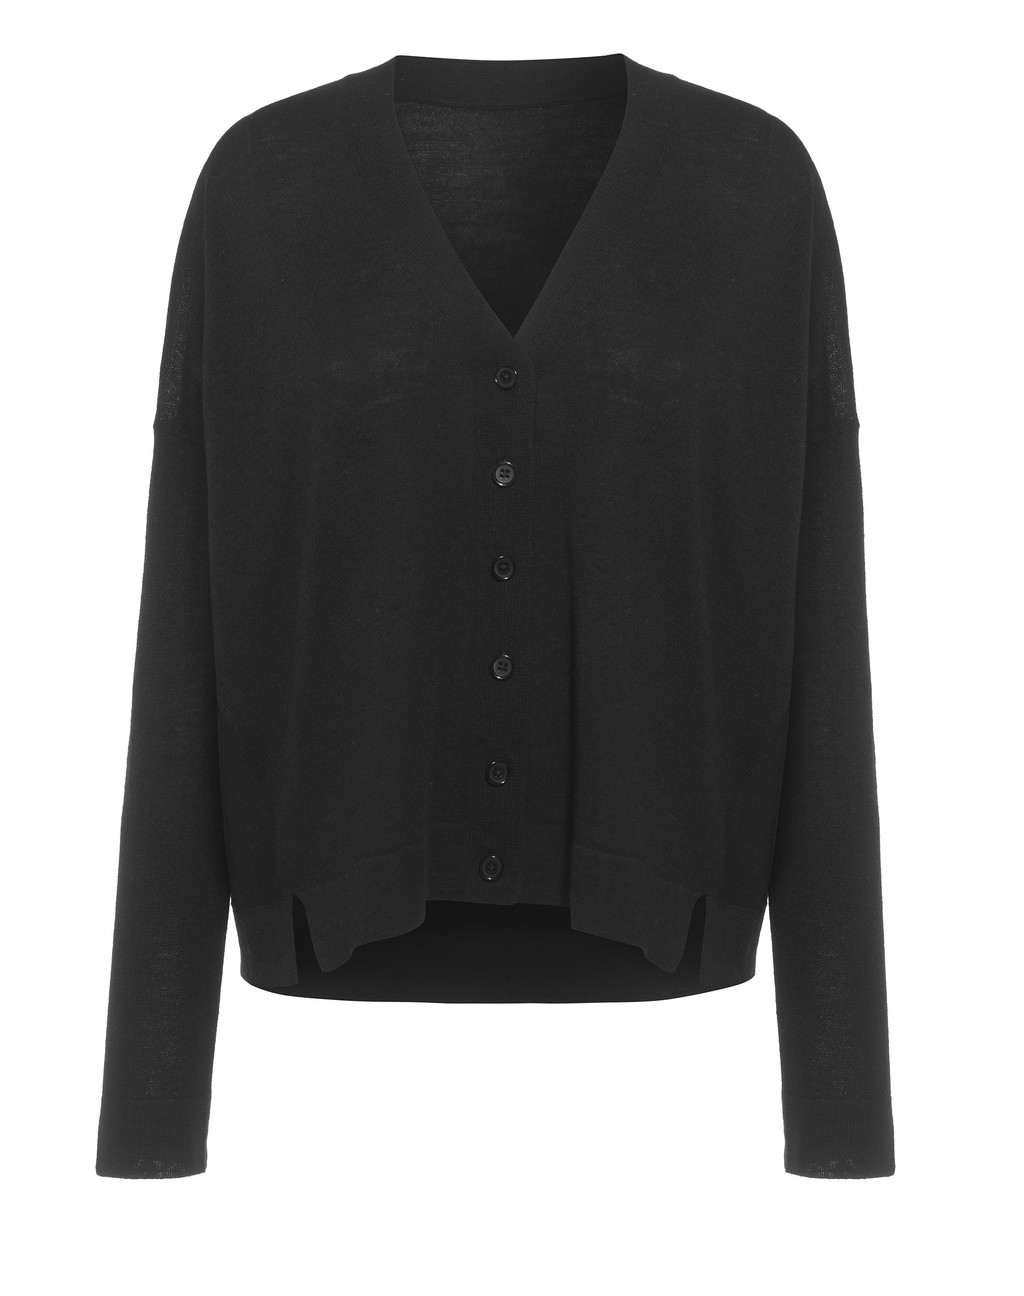 Fine Knit Cardigan Black - neckline: v-neck; pattern: plain; predominant colour: black; occasions: casual; length: standard; style: standard; fibres: wool - 100%; fit: standard fit; sleeve length: long sleeve; sleeve style: standard; texture group: knits/crochet; pattern type: knitted - fine stitch; season: s/s 2016; wardrobe: basic